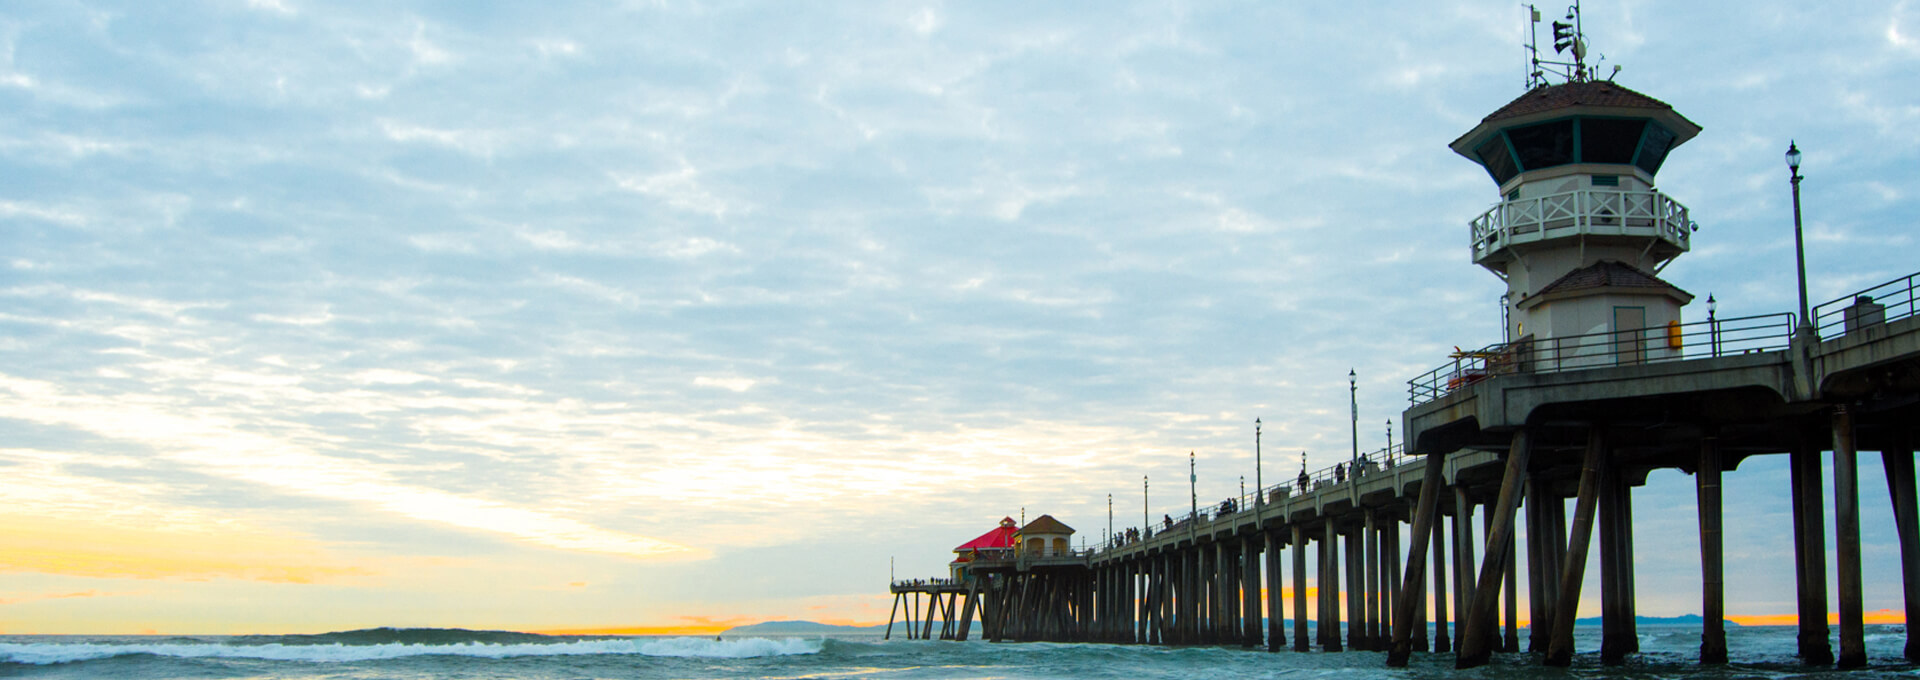 Supporting Early Career Professionals: How the Southern California Chapter Does It